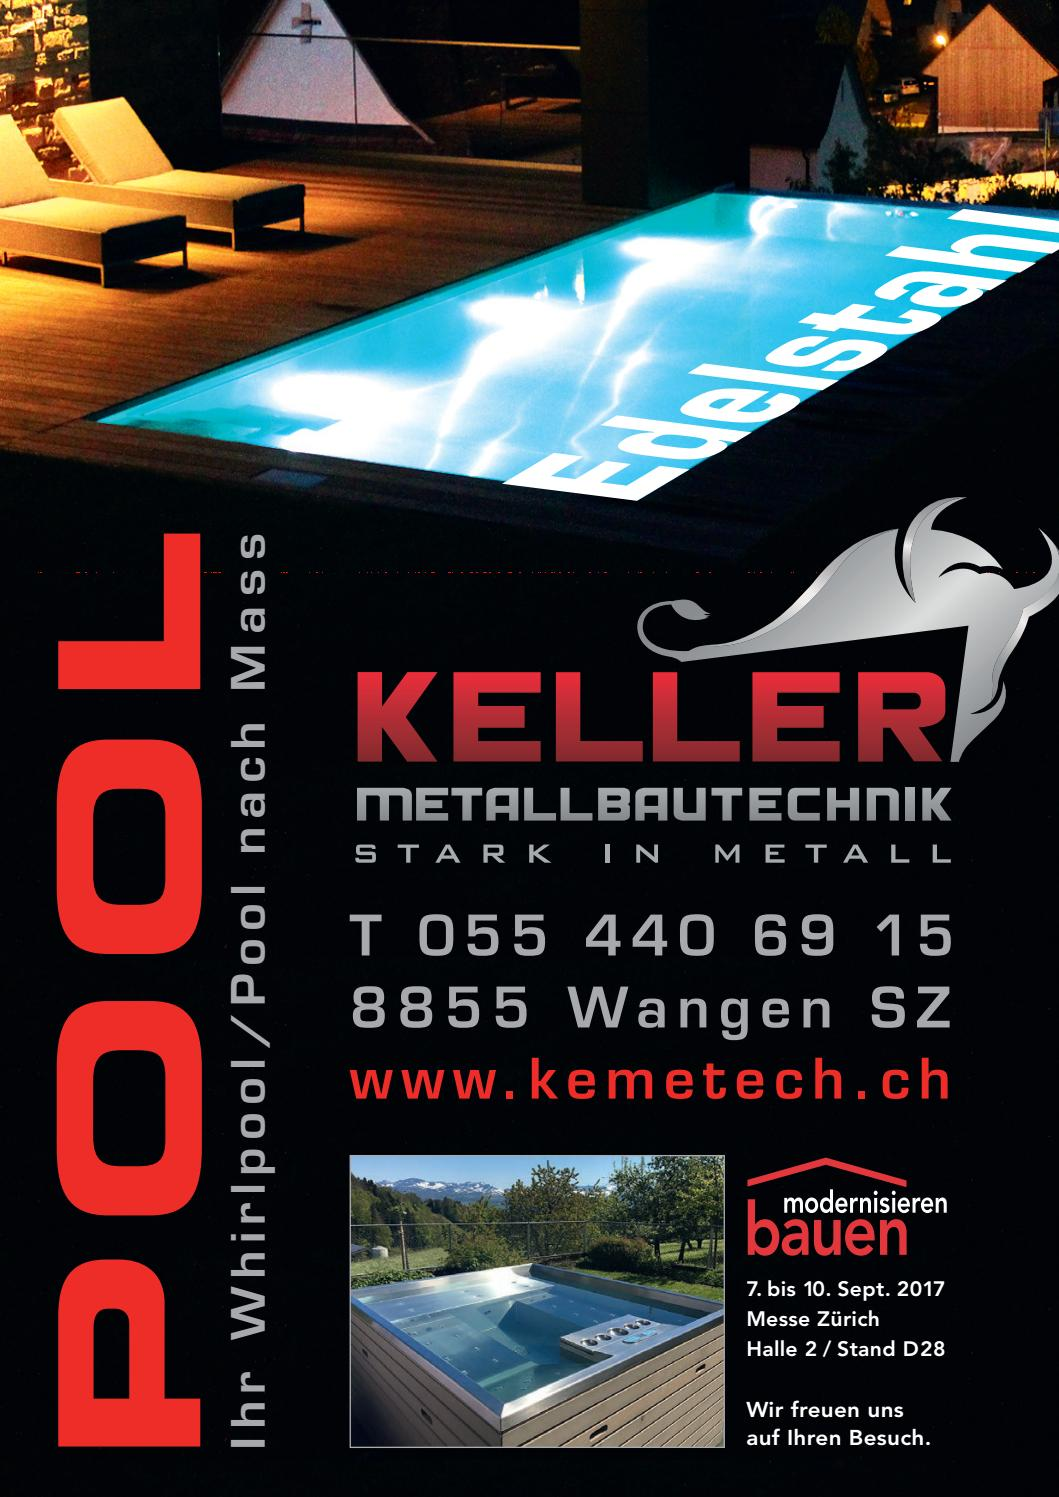 Pool Bauen Zürich Baurundschau 03 2017 By Rundschaumedien Ag Issuu